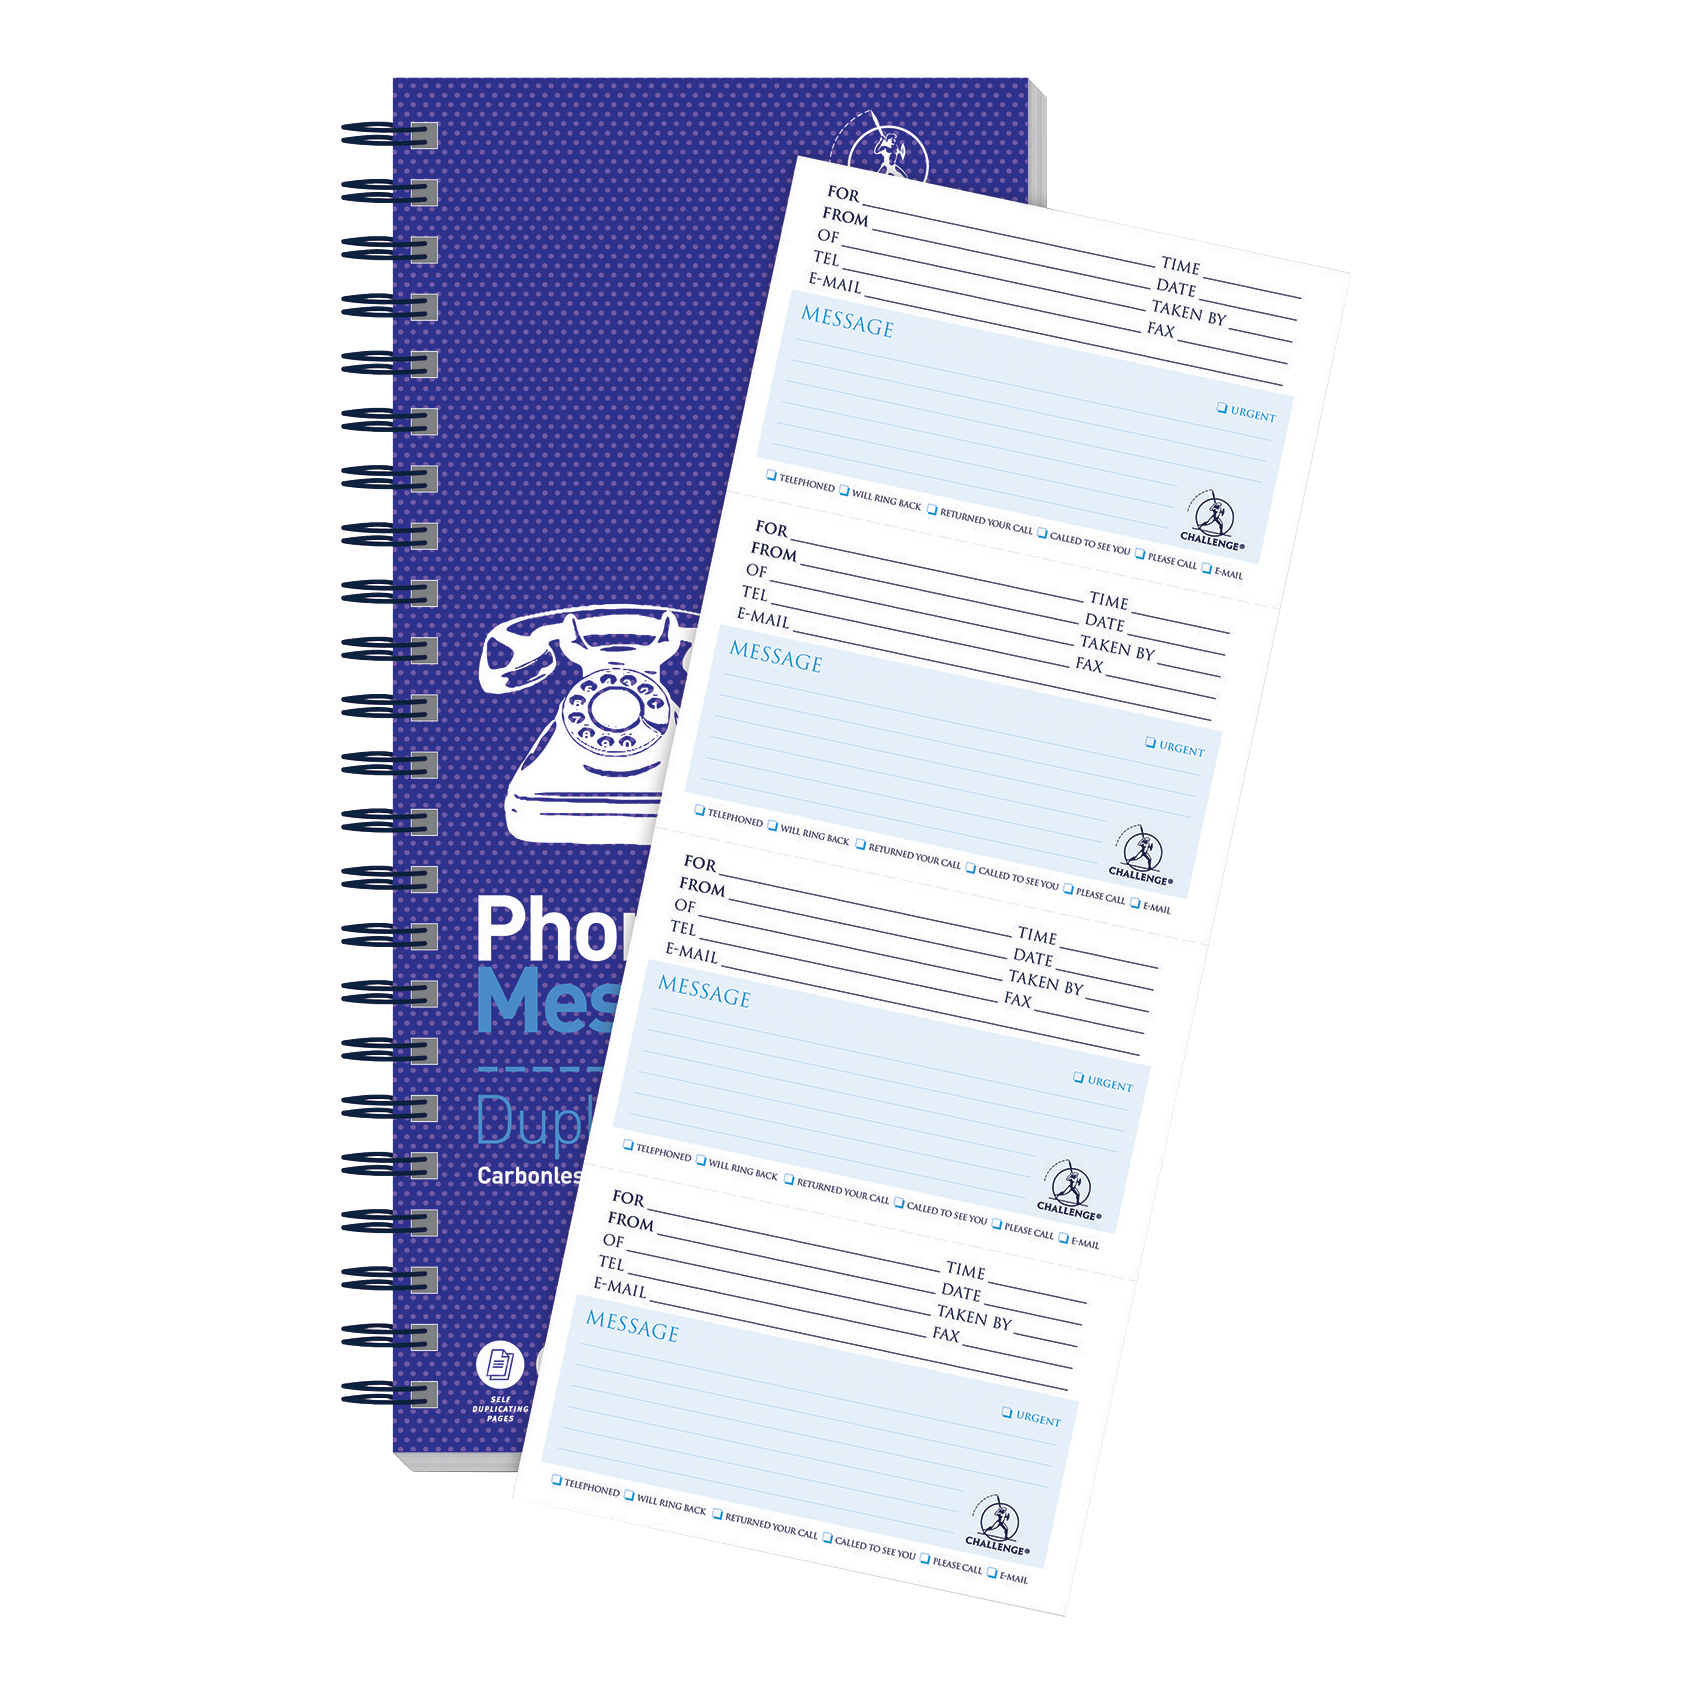 Things To Do Today Challenge Telephone Message Book Wirebound Carbonless 320 Messages 305x141mm Ref 100080054